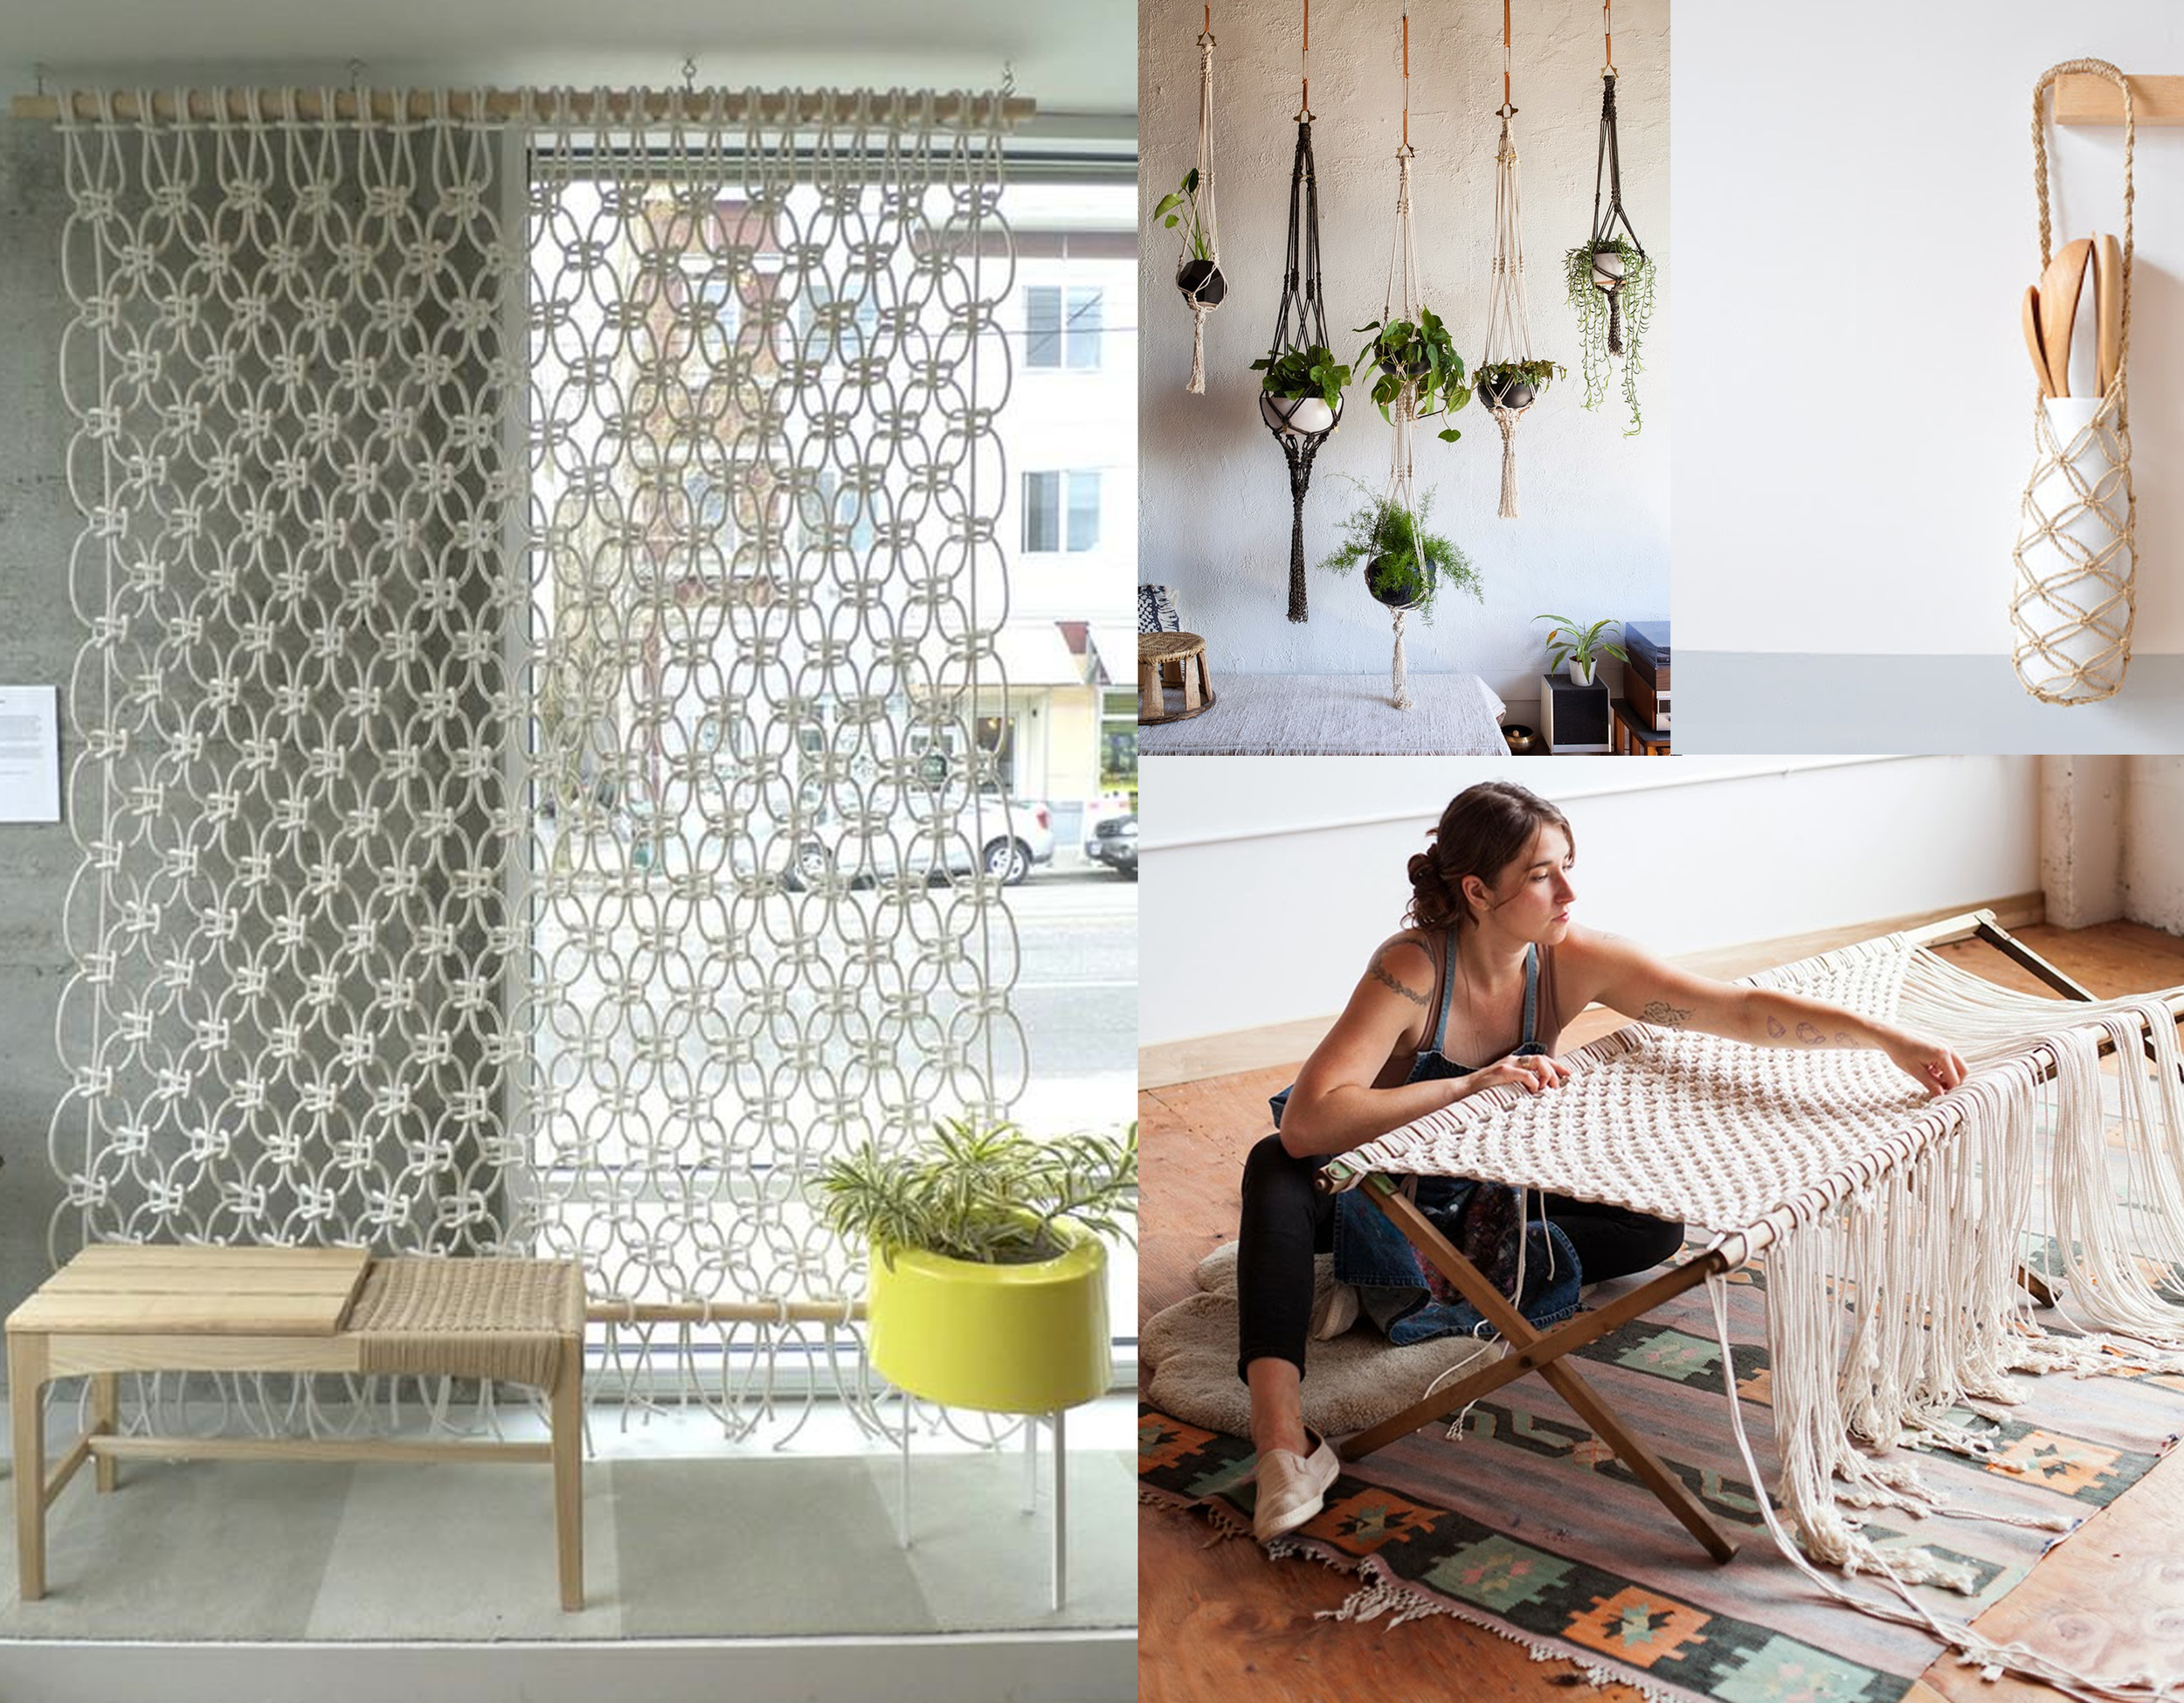 found on  Remodelista : wallhanging by Sally England - potholders  Modern Macrame  -  Emily Katz  at work in her studio